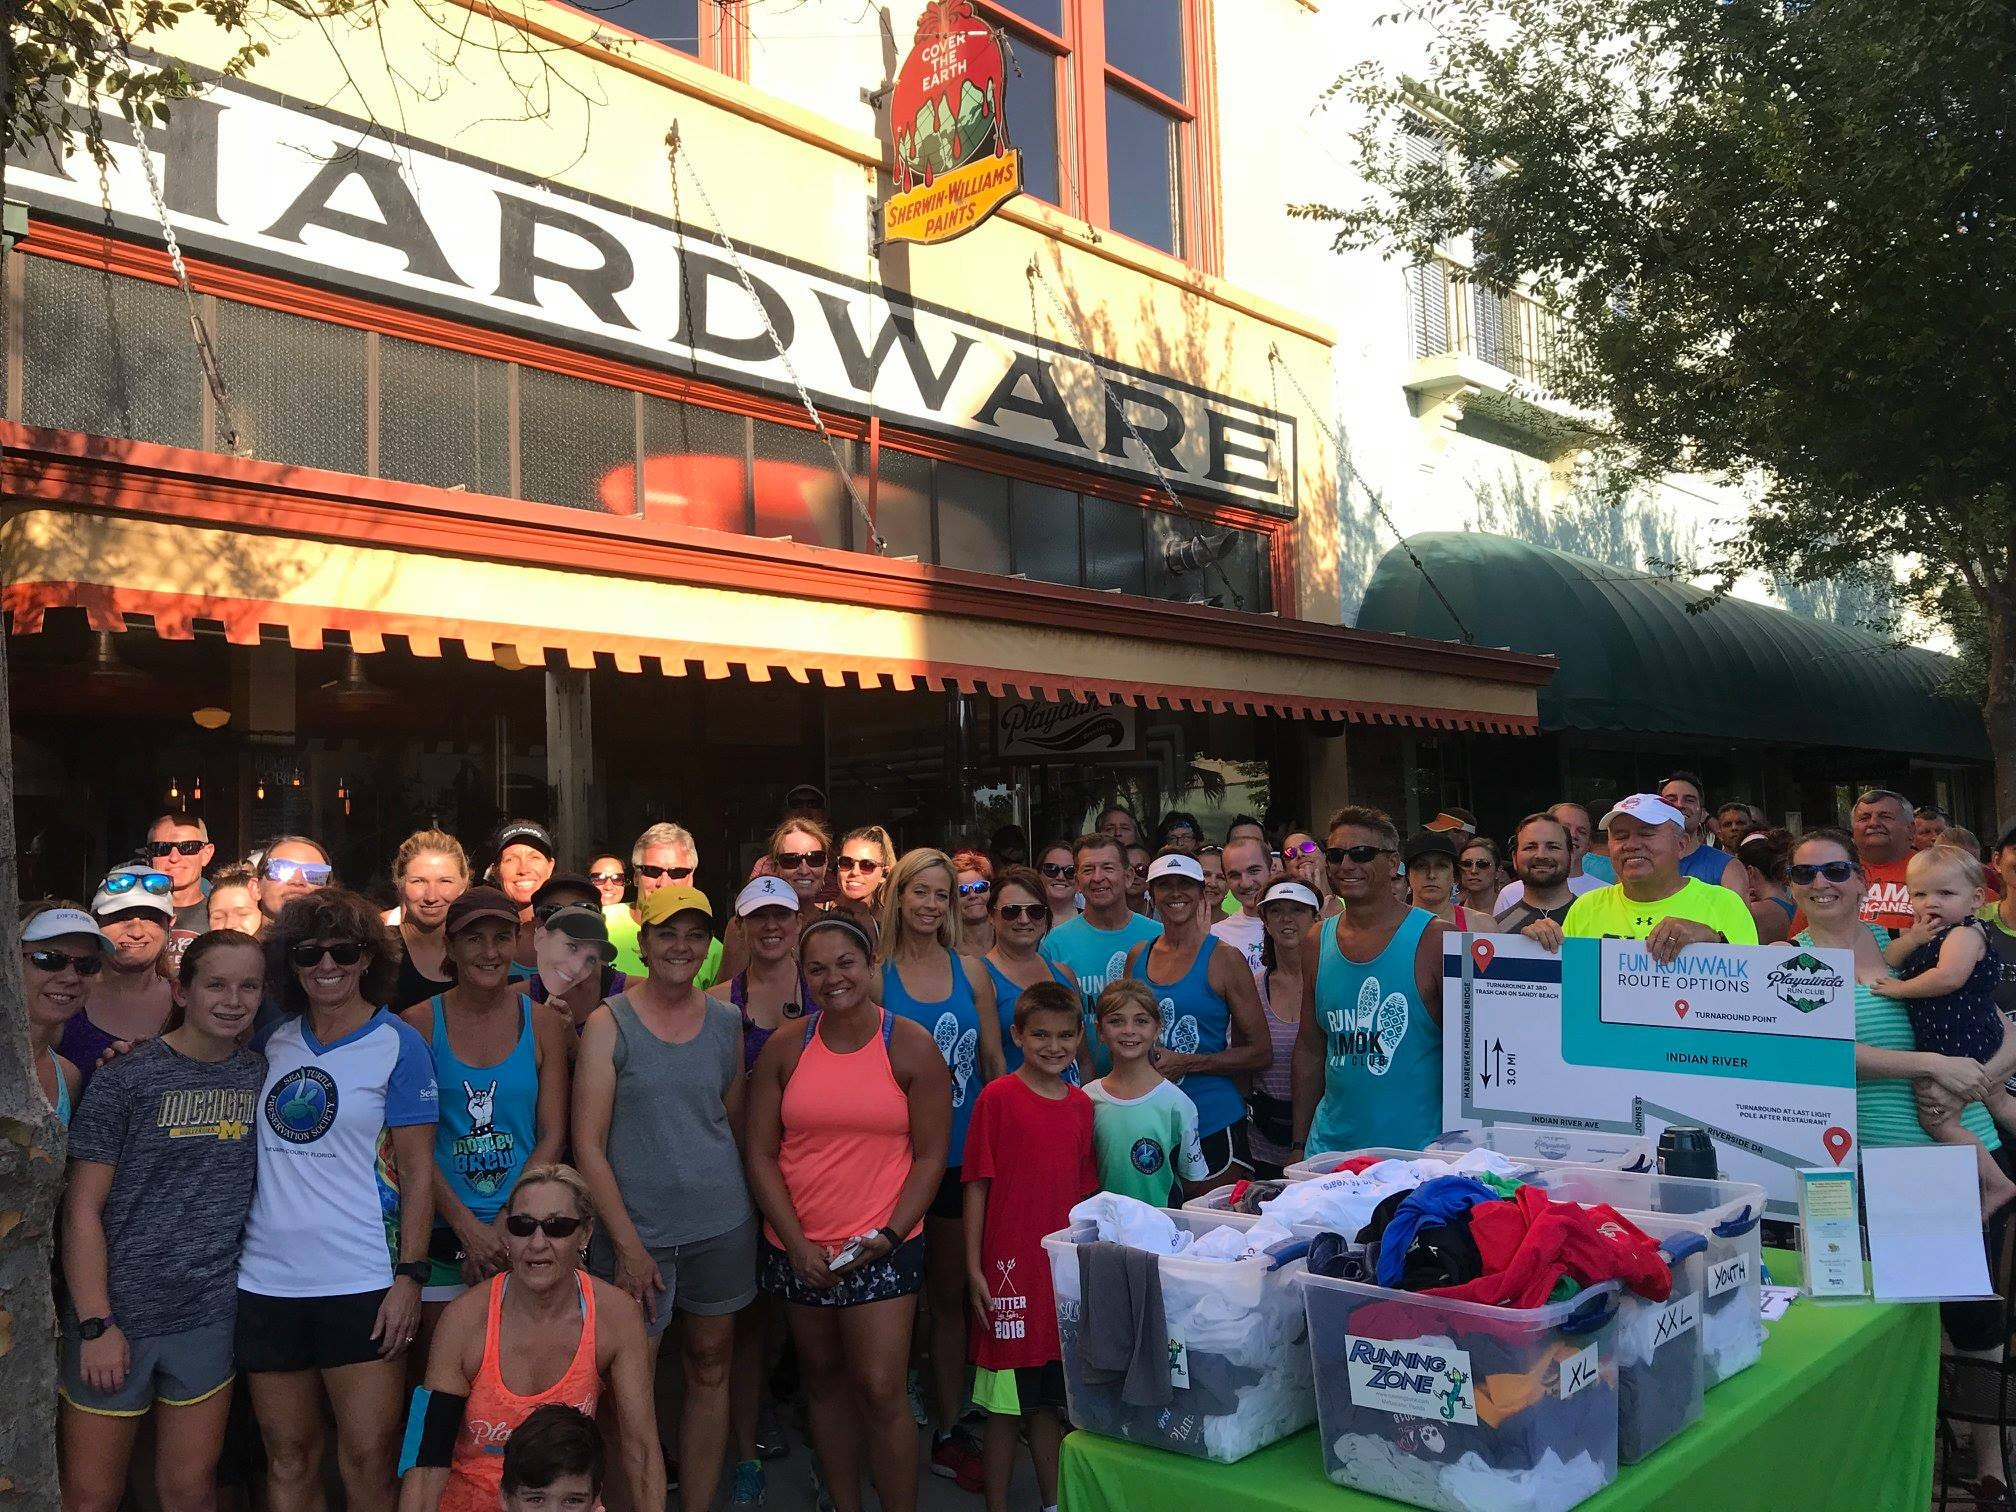 636655176384203270-RunningZone Summer brewery fun run tour continues Tuesday at Florida Beer Company in Cape Canaveral